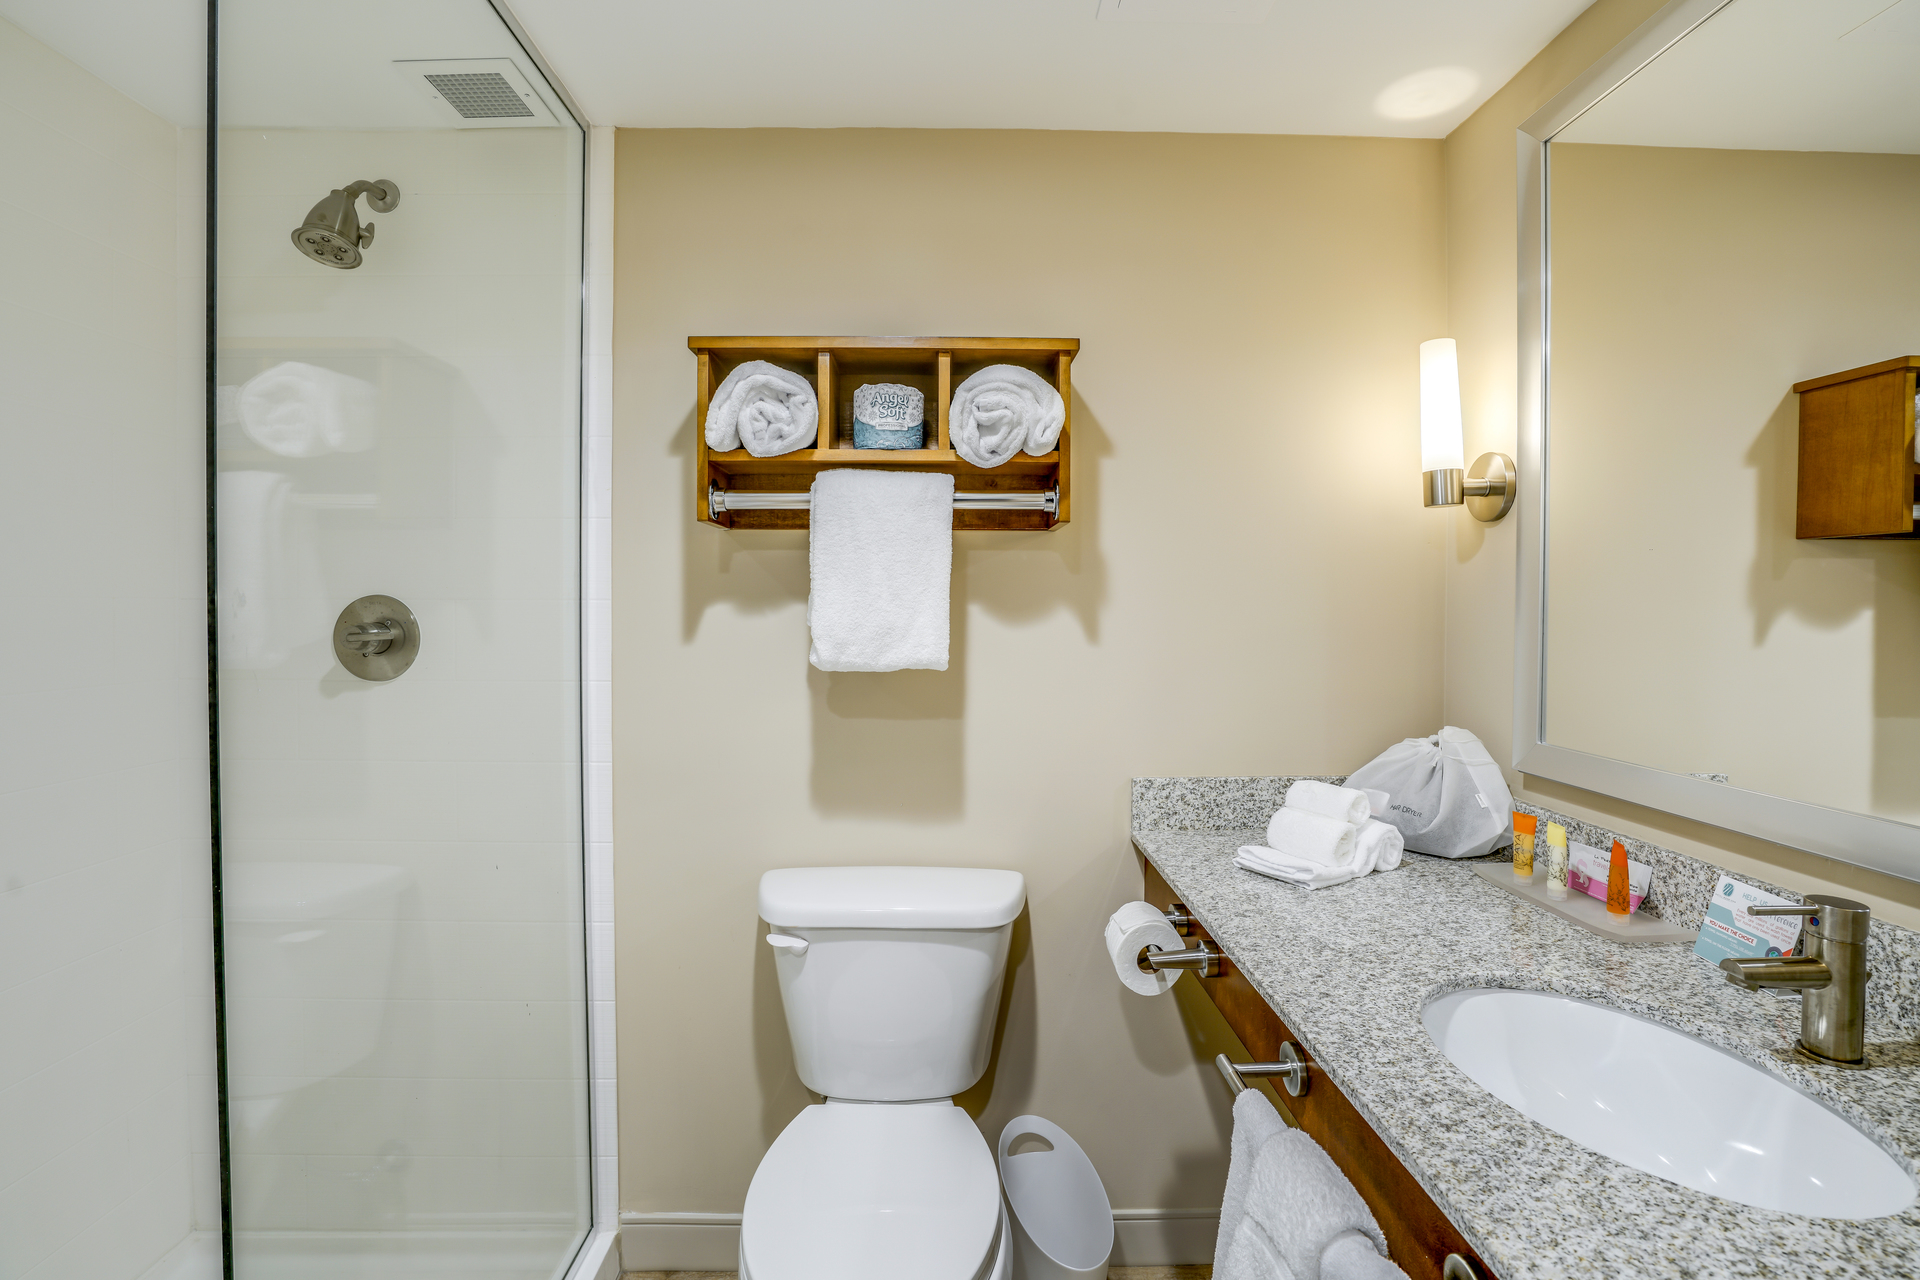 https://www.hotelsbyday.com/_data/default-hotel_image/4/20594/bathroom.jpg